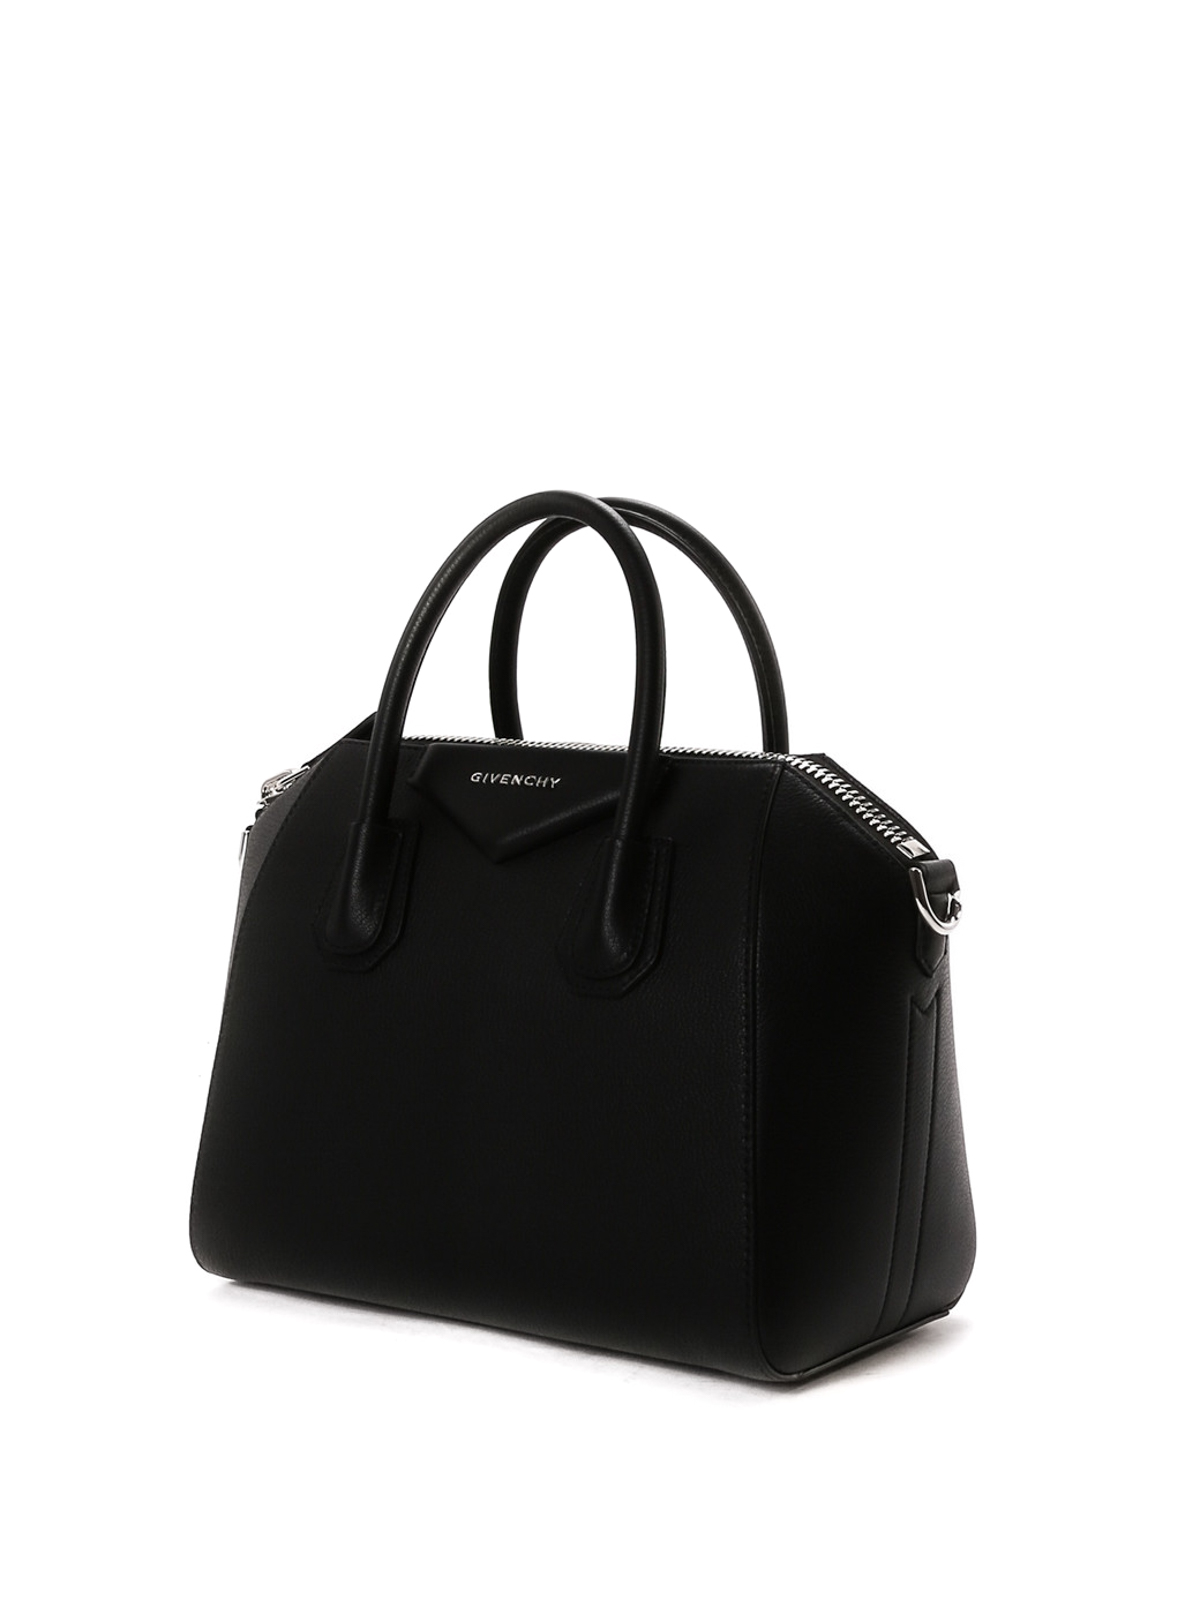 Givenchy Totes Bags Online Antigona Leather Tote